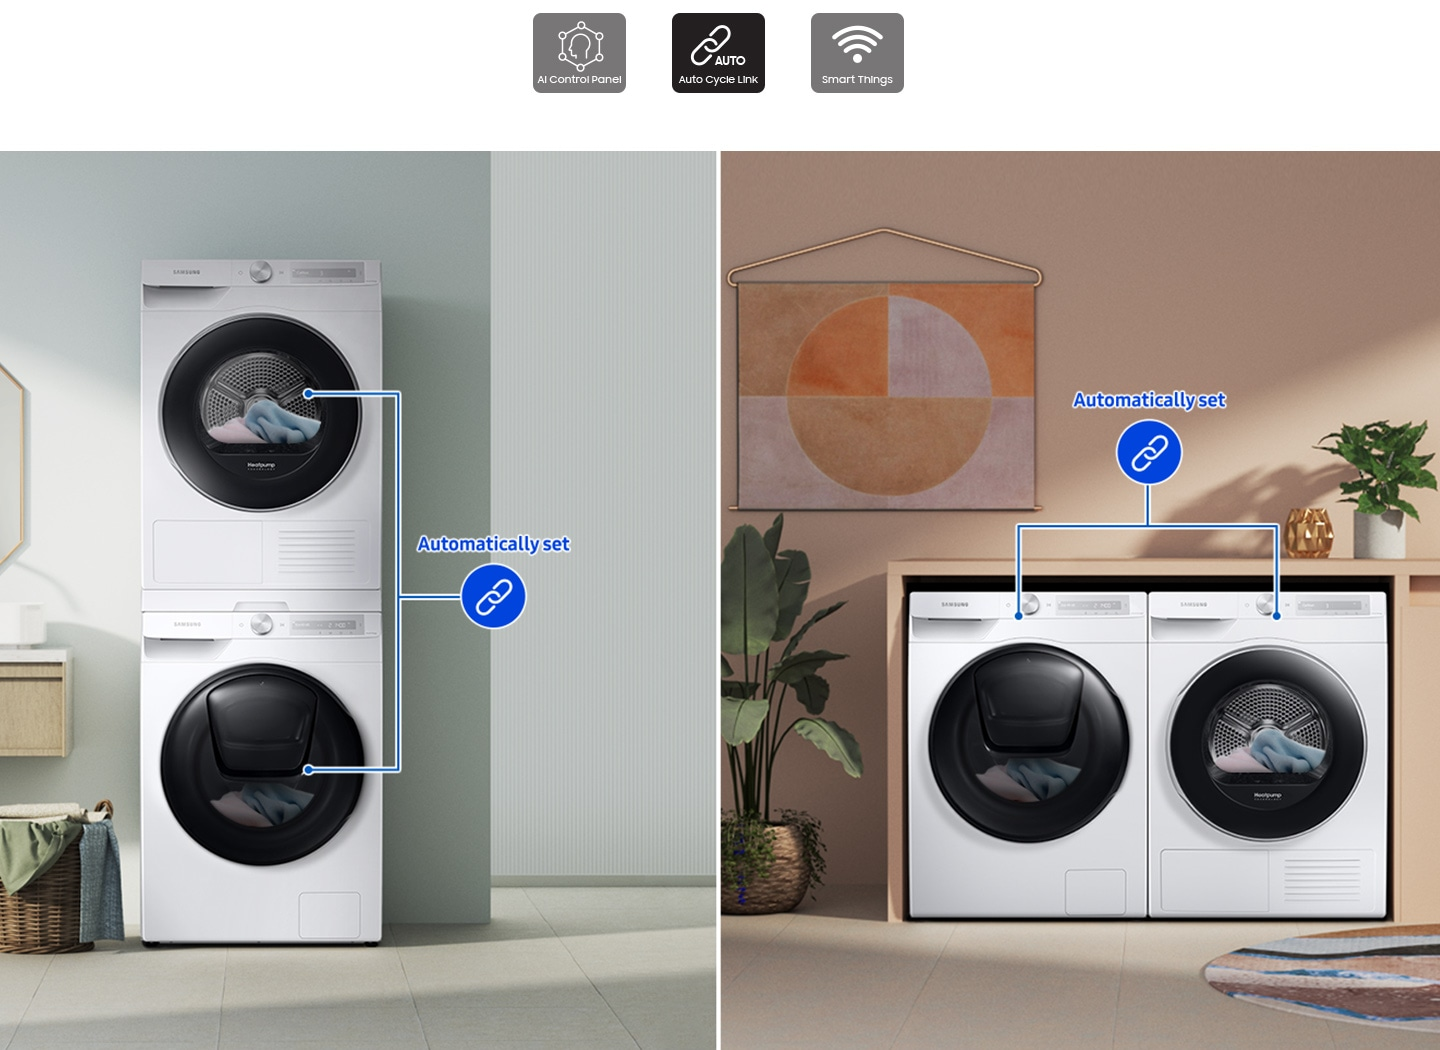 Two sets of washers and dryers are placed differently in two separate living spaces. Each set is linked with a blue line.